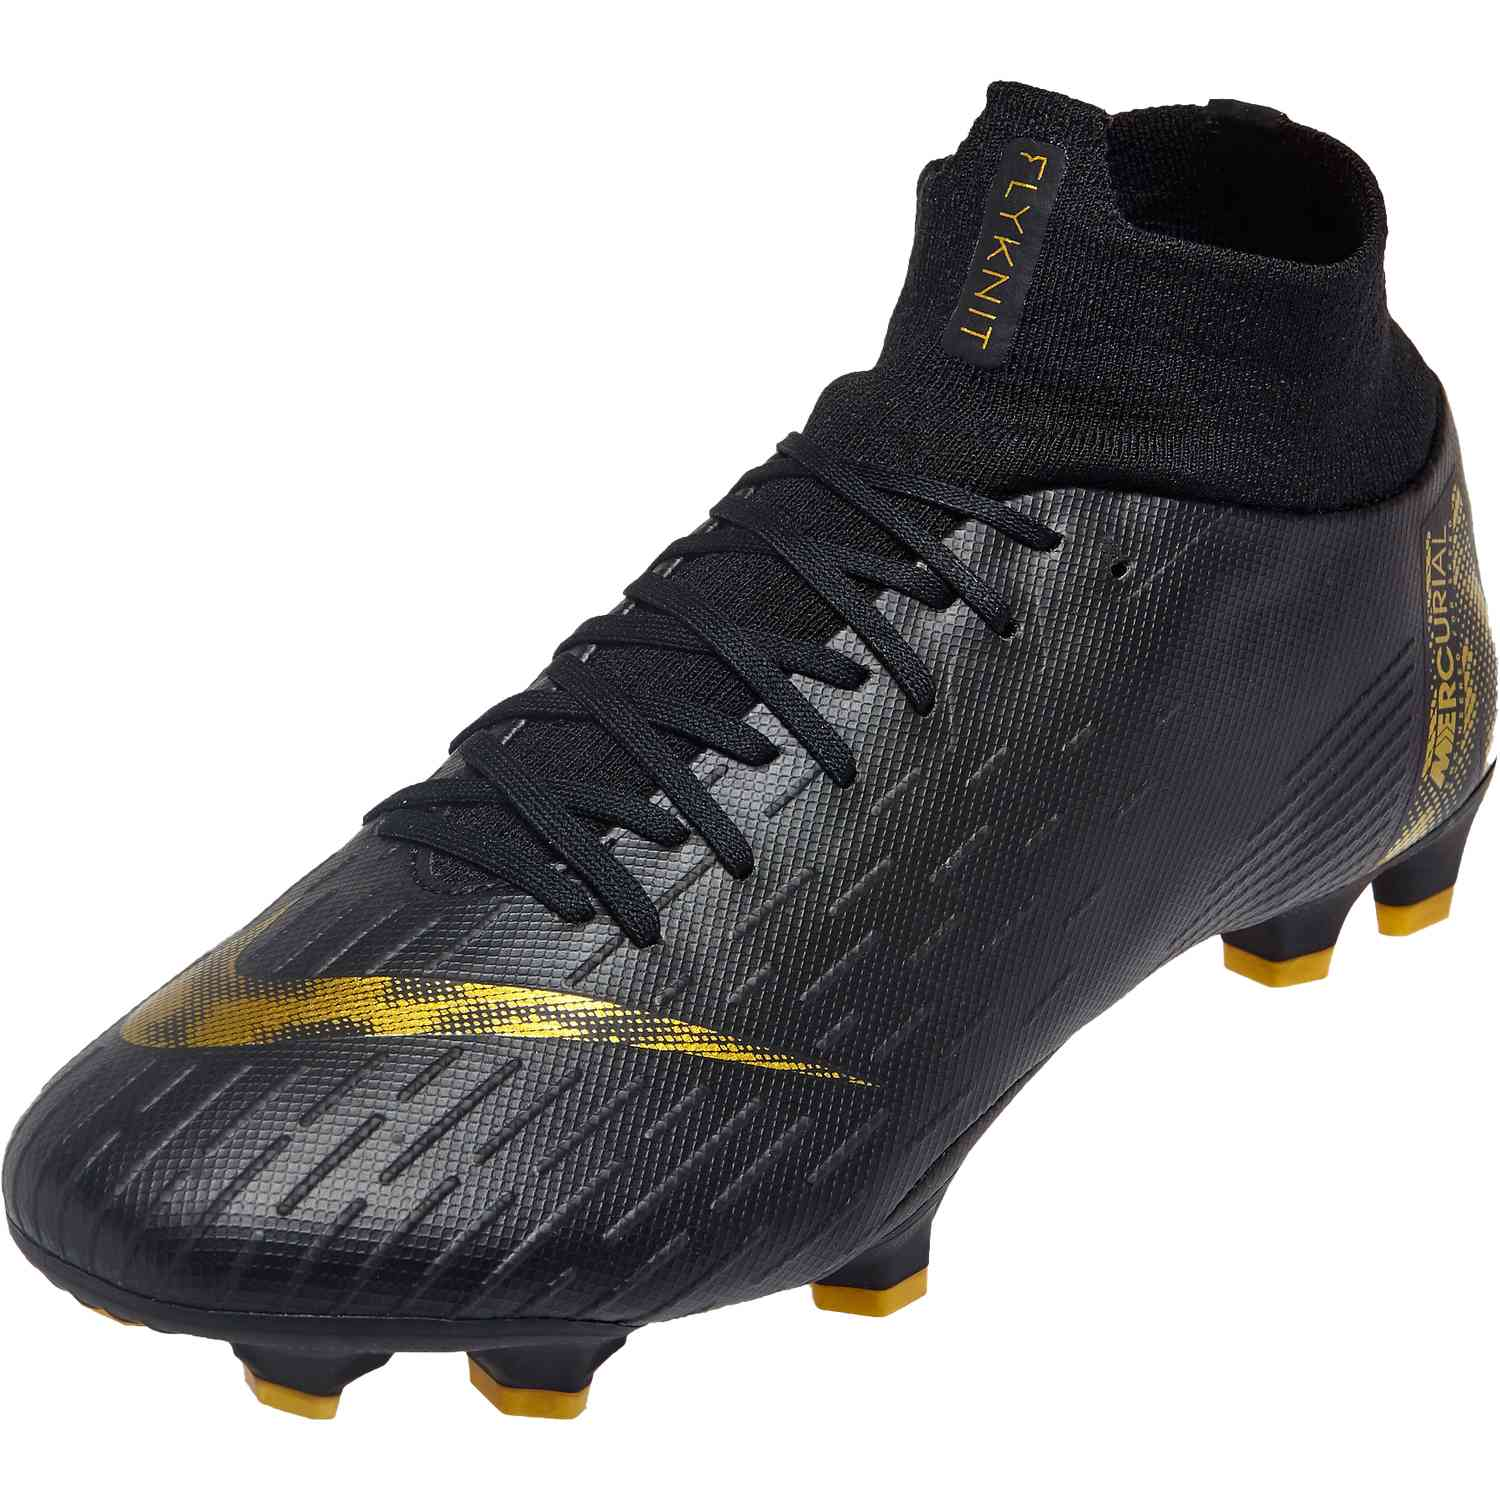 newest 6292b 77a98 Nike Mercurial Superfly 6 Pro FG – Black Lux